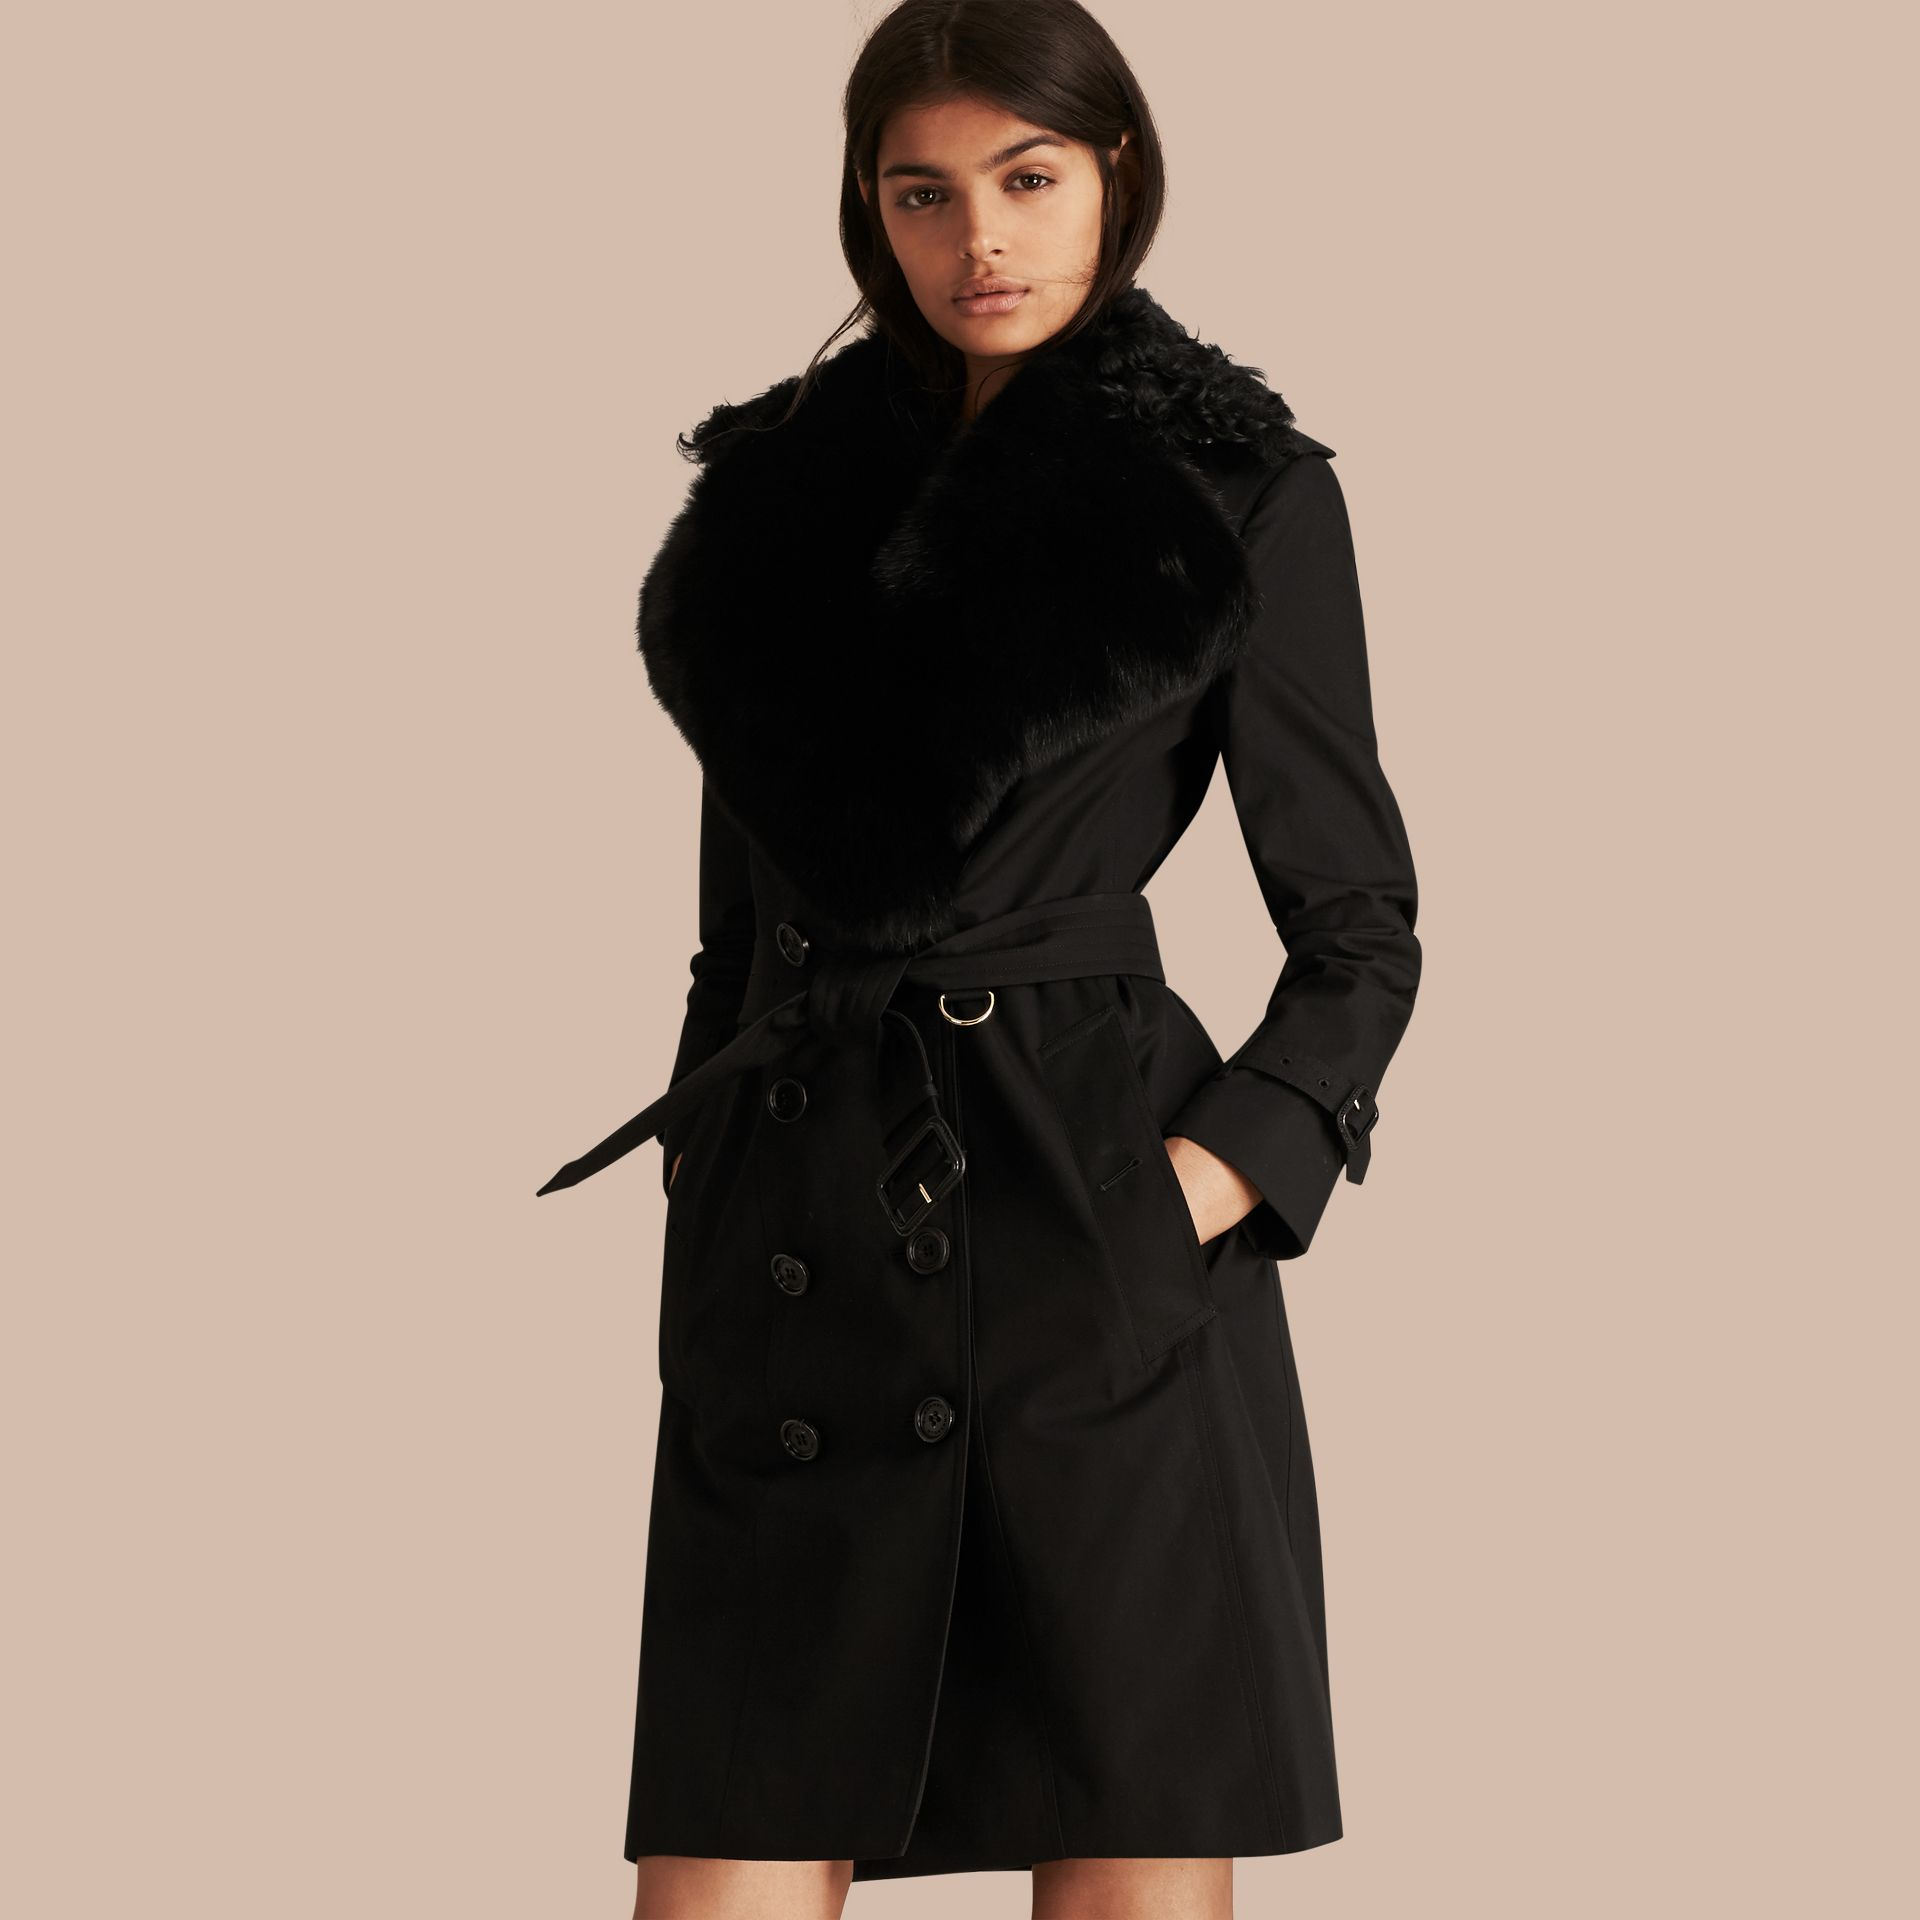 Black Cotton Gabardine Trench Coat with Detachable Fur Trim - gallery image 1